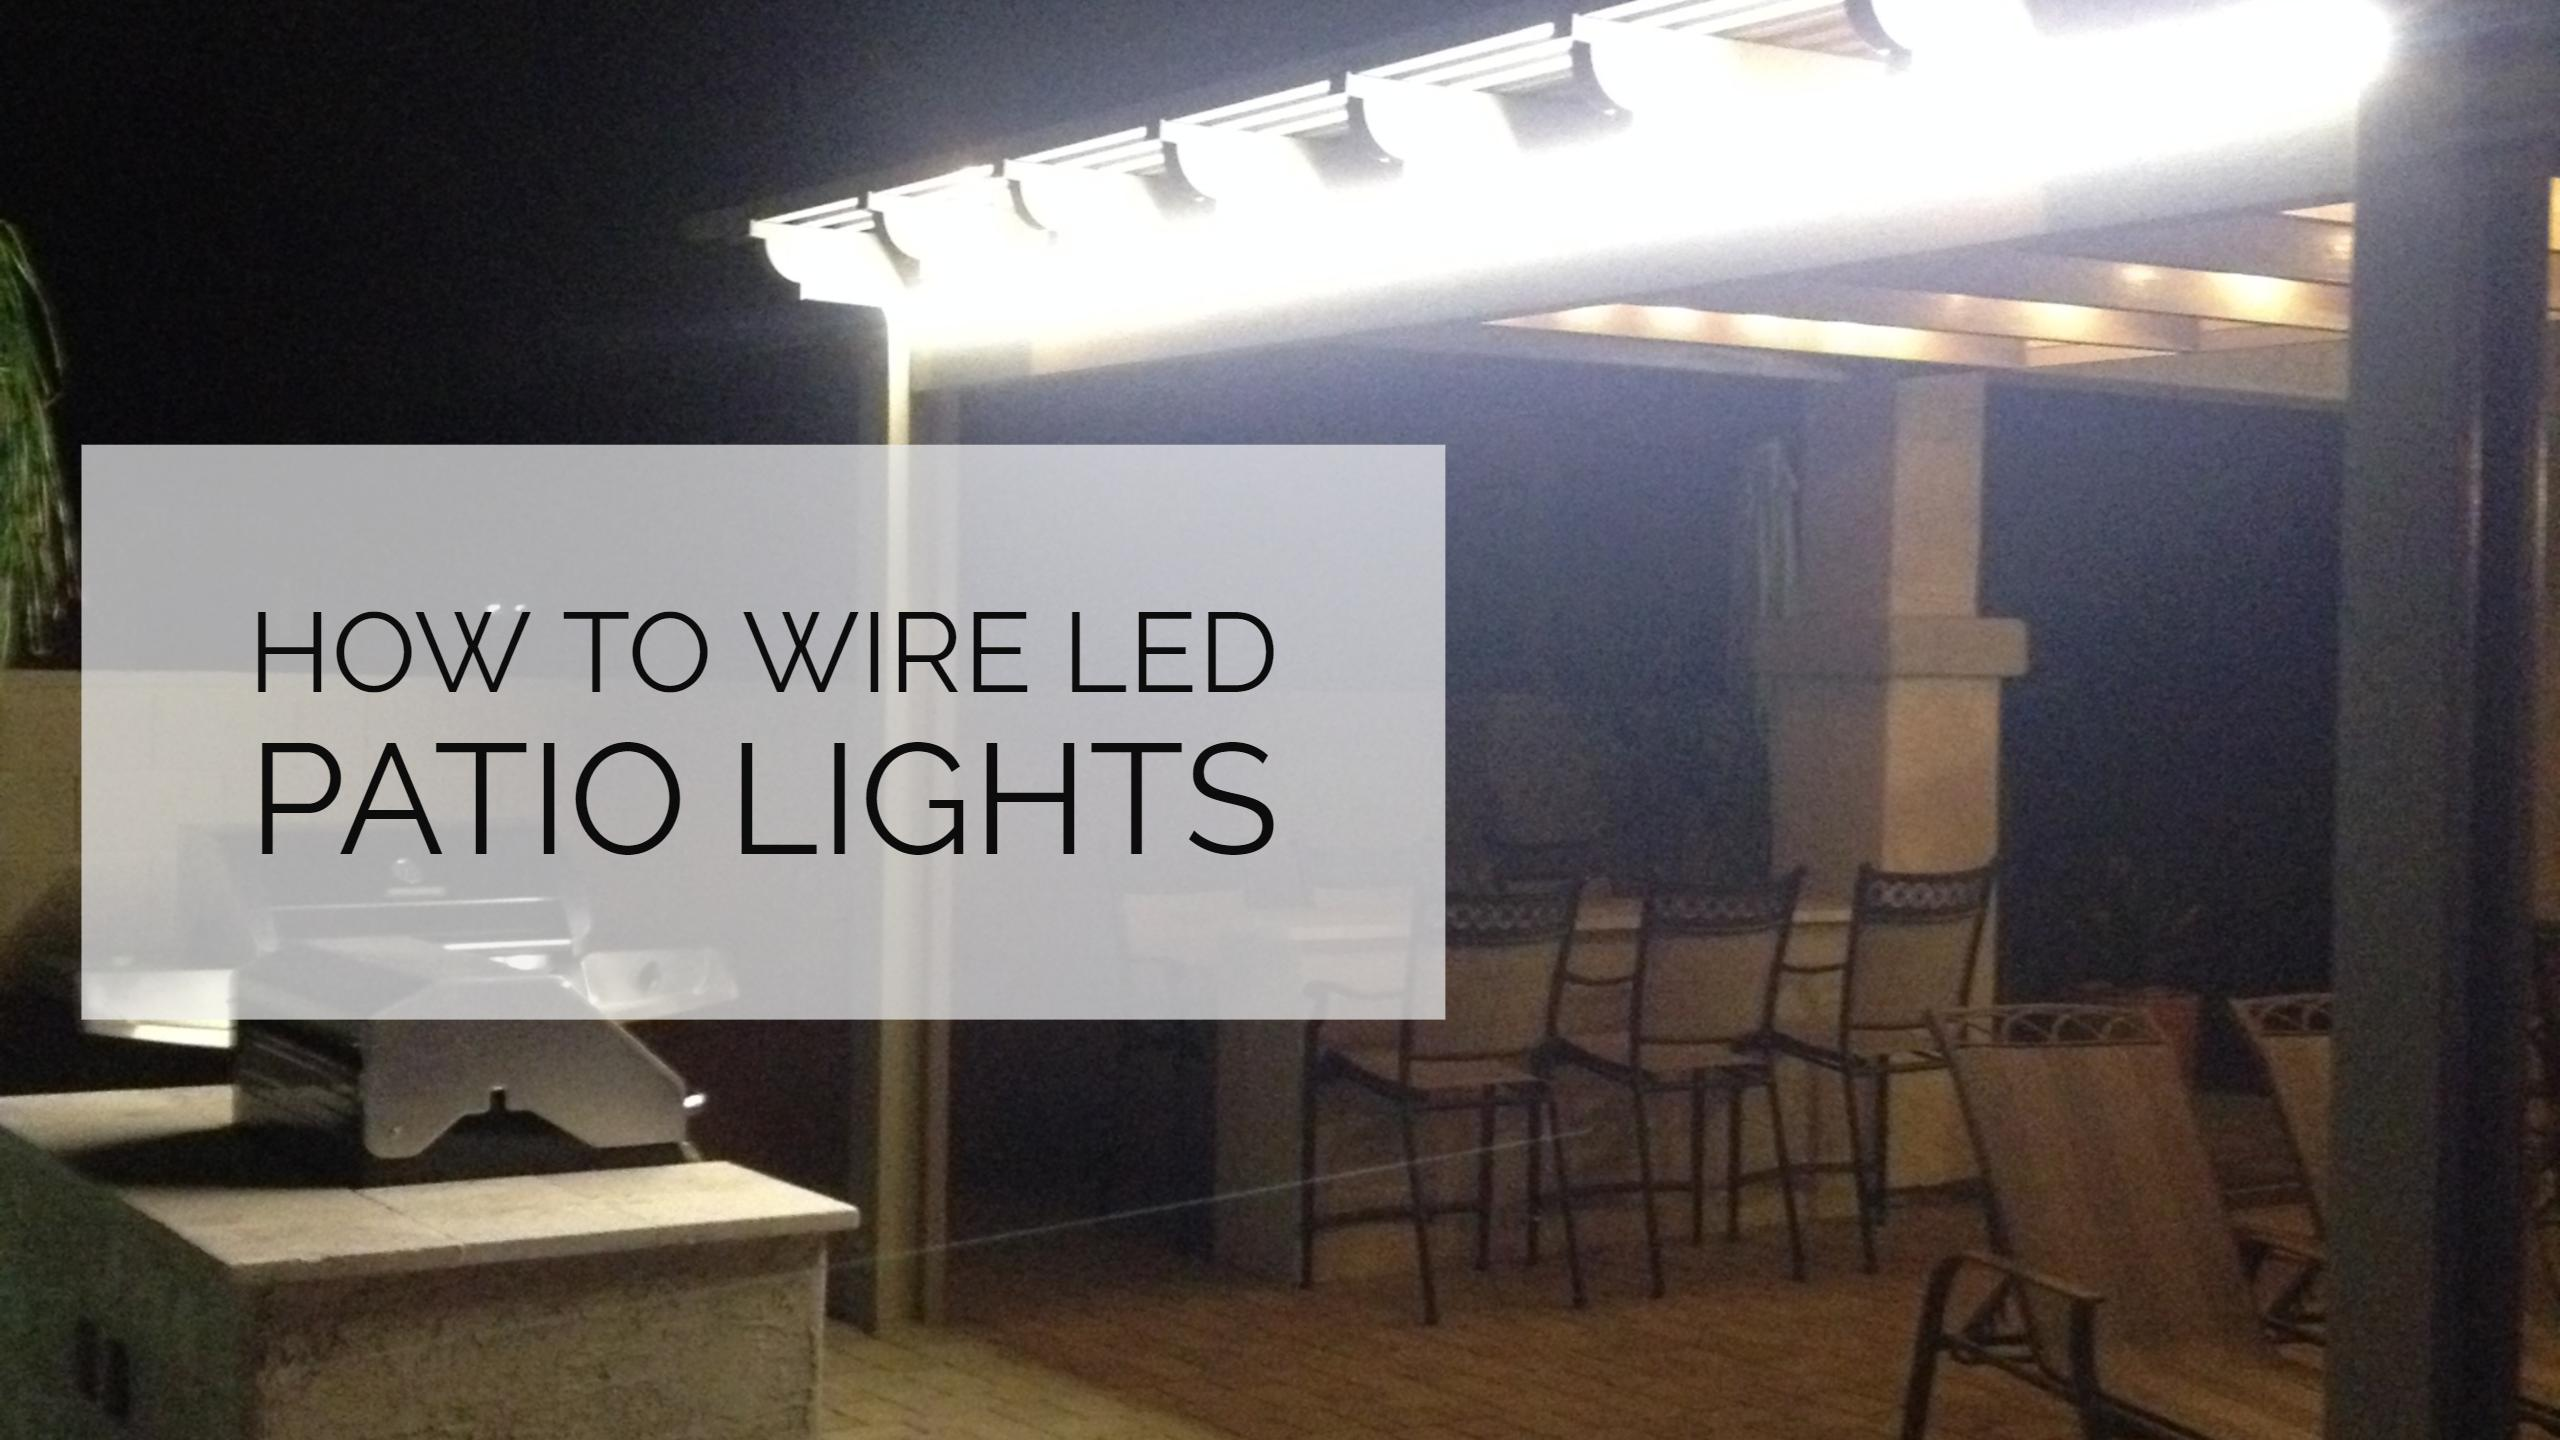 Superieur How To Wire LED Patio Lights